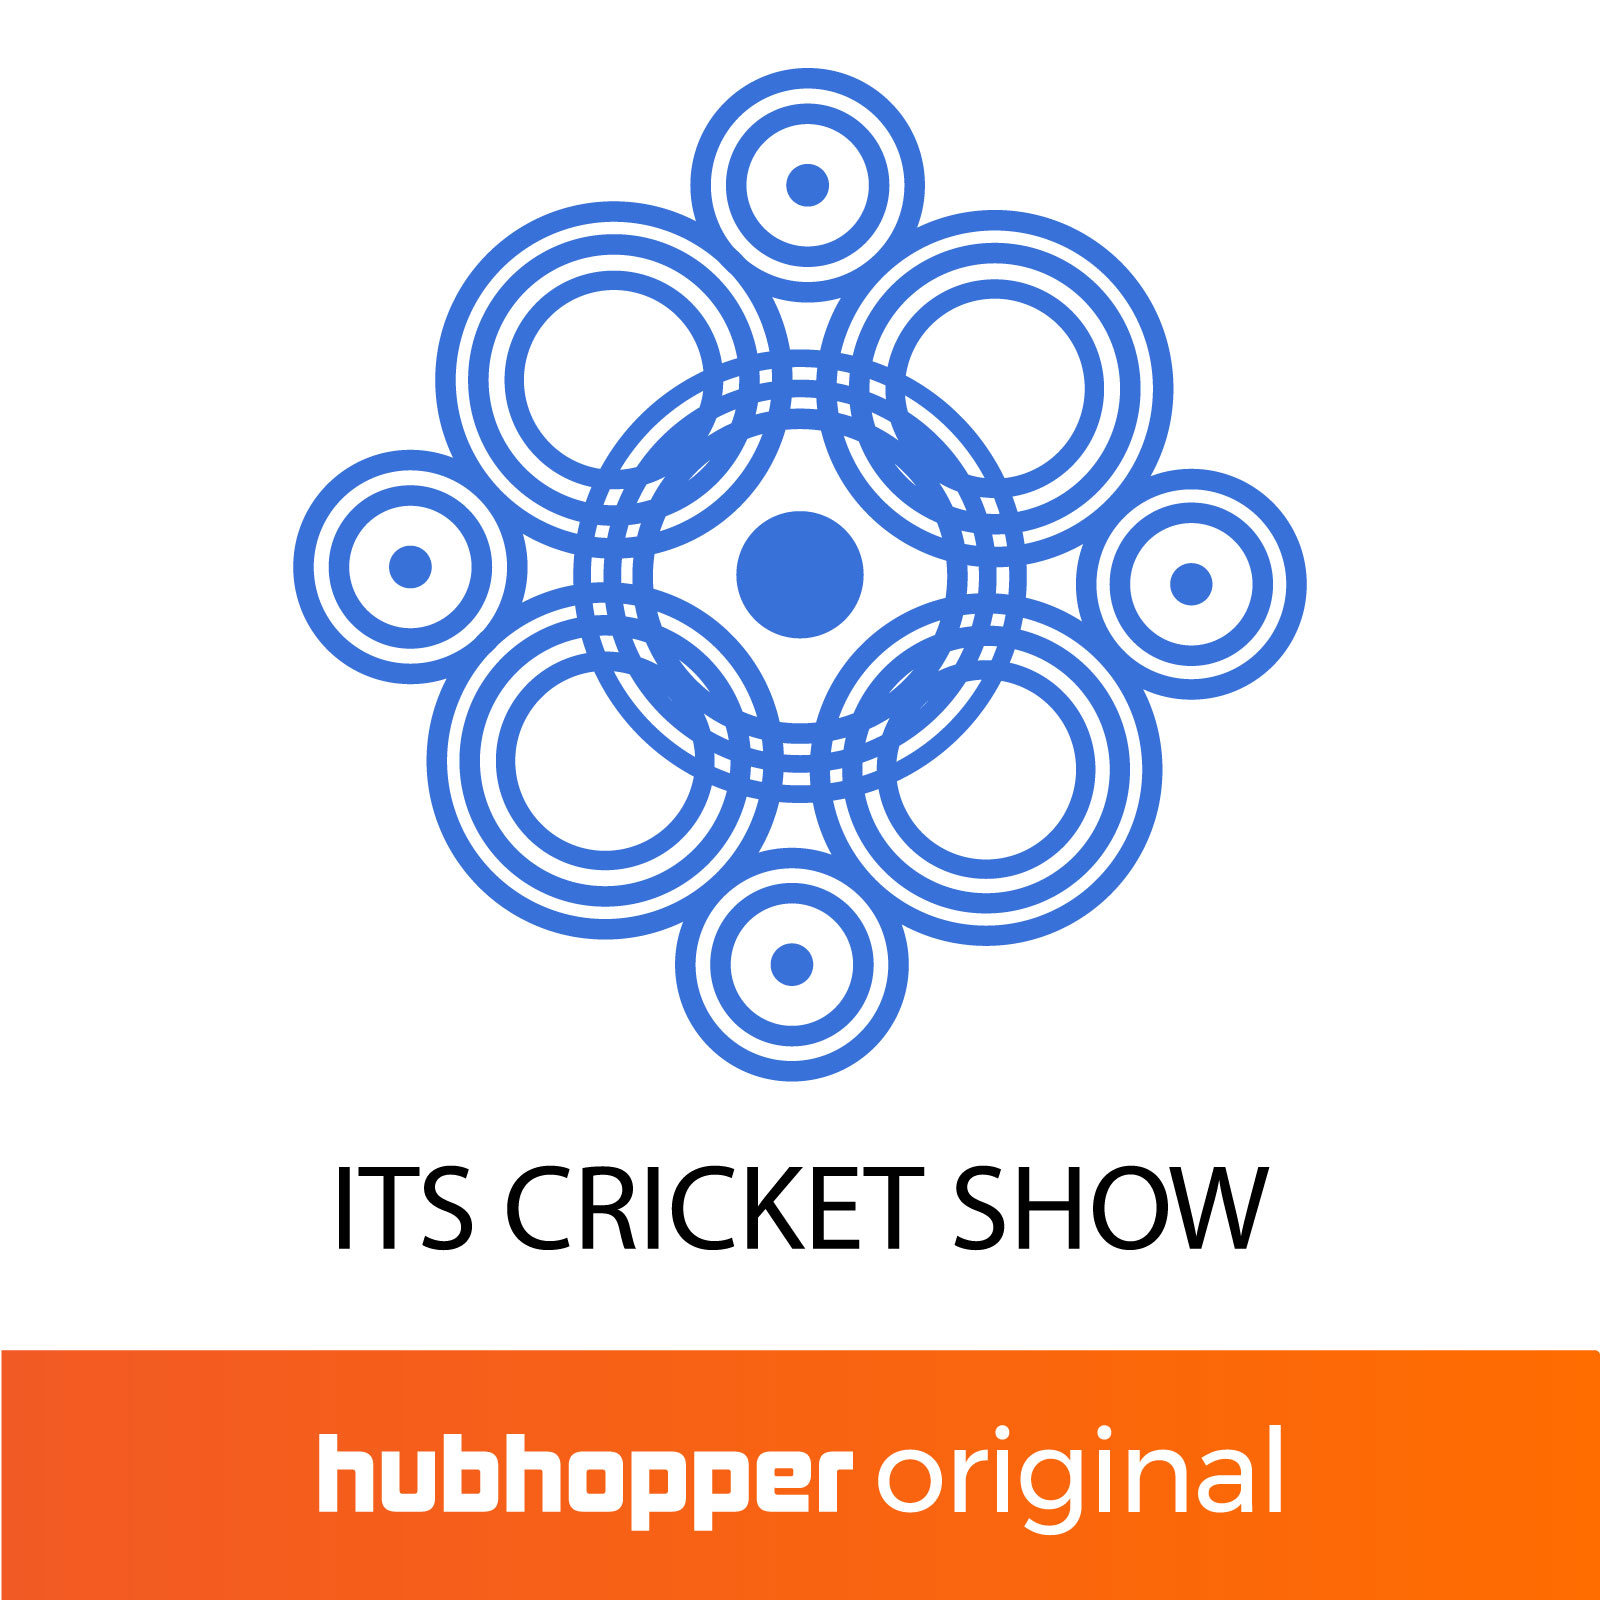 Episode 45 : Chennai Super Kings and Delhi Capitals Preview